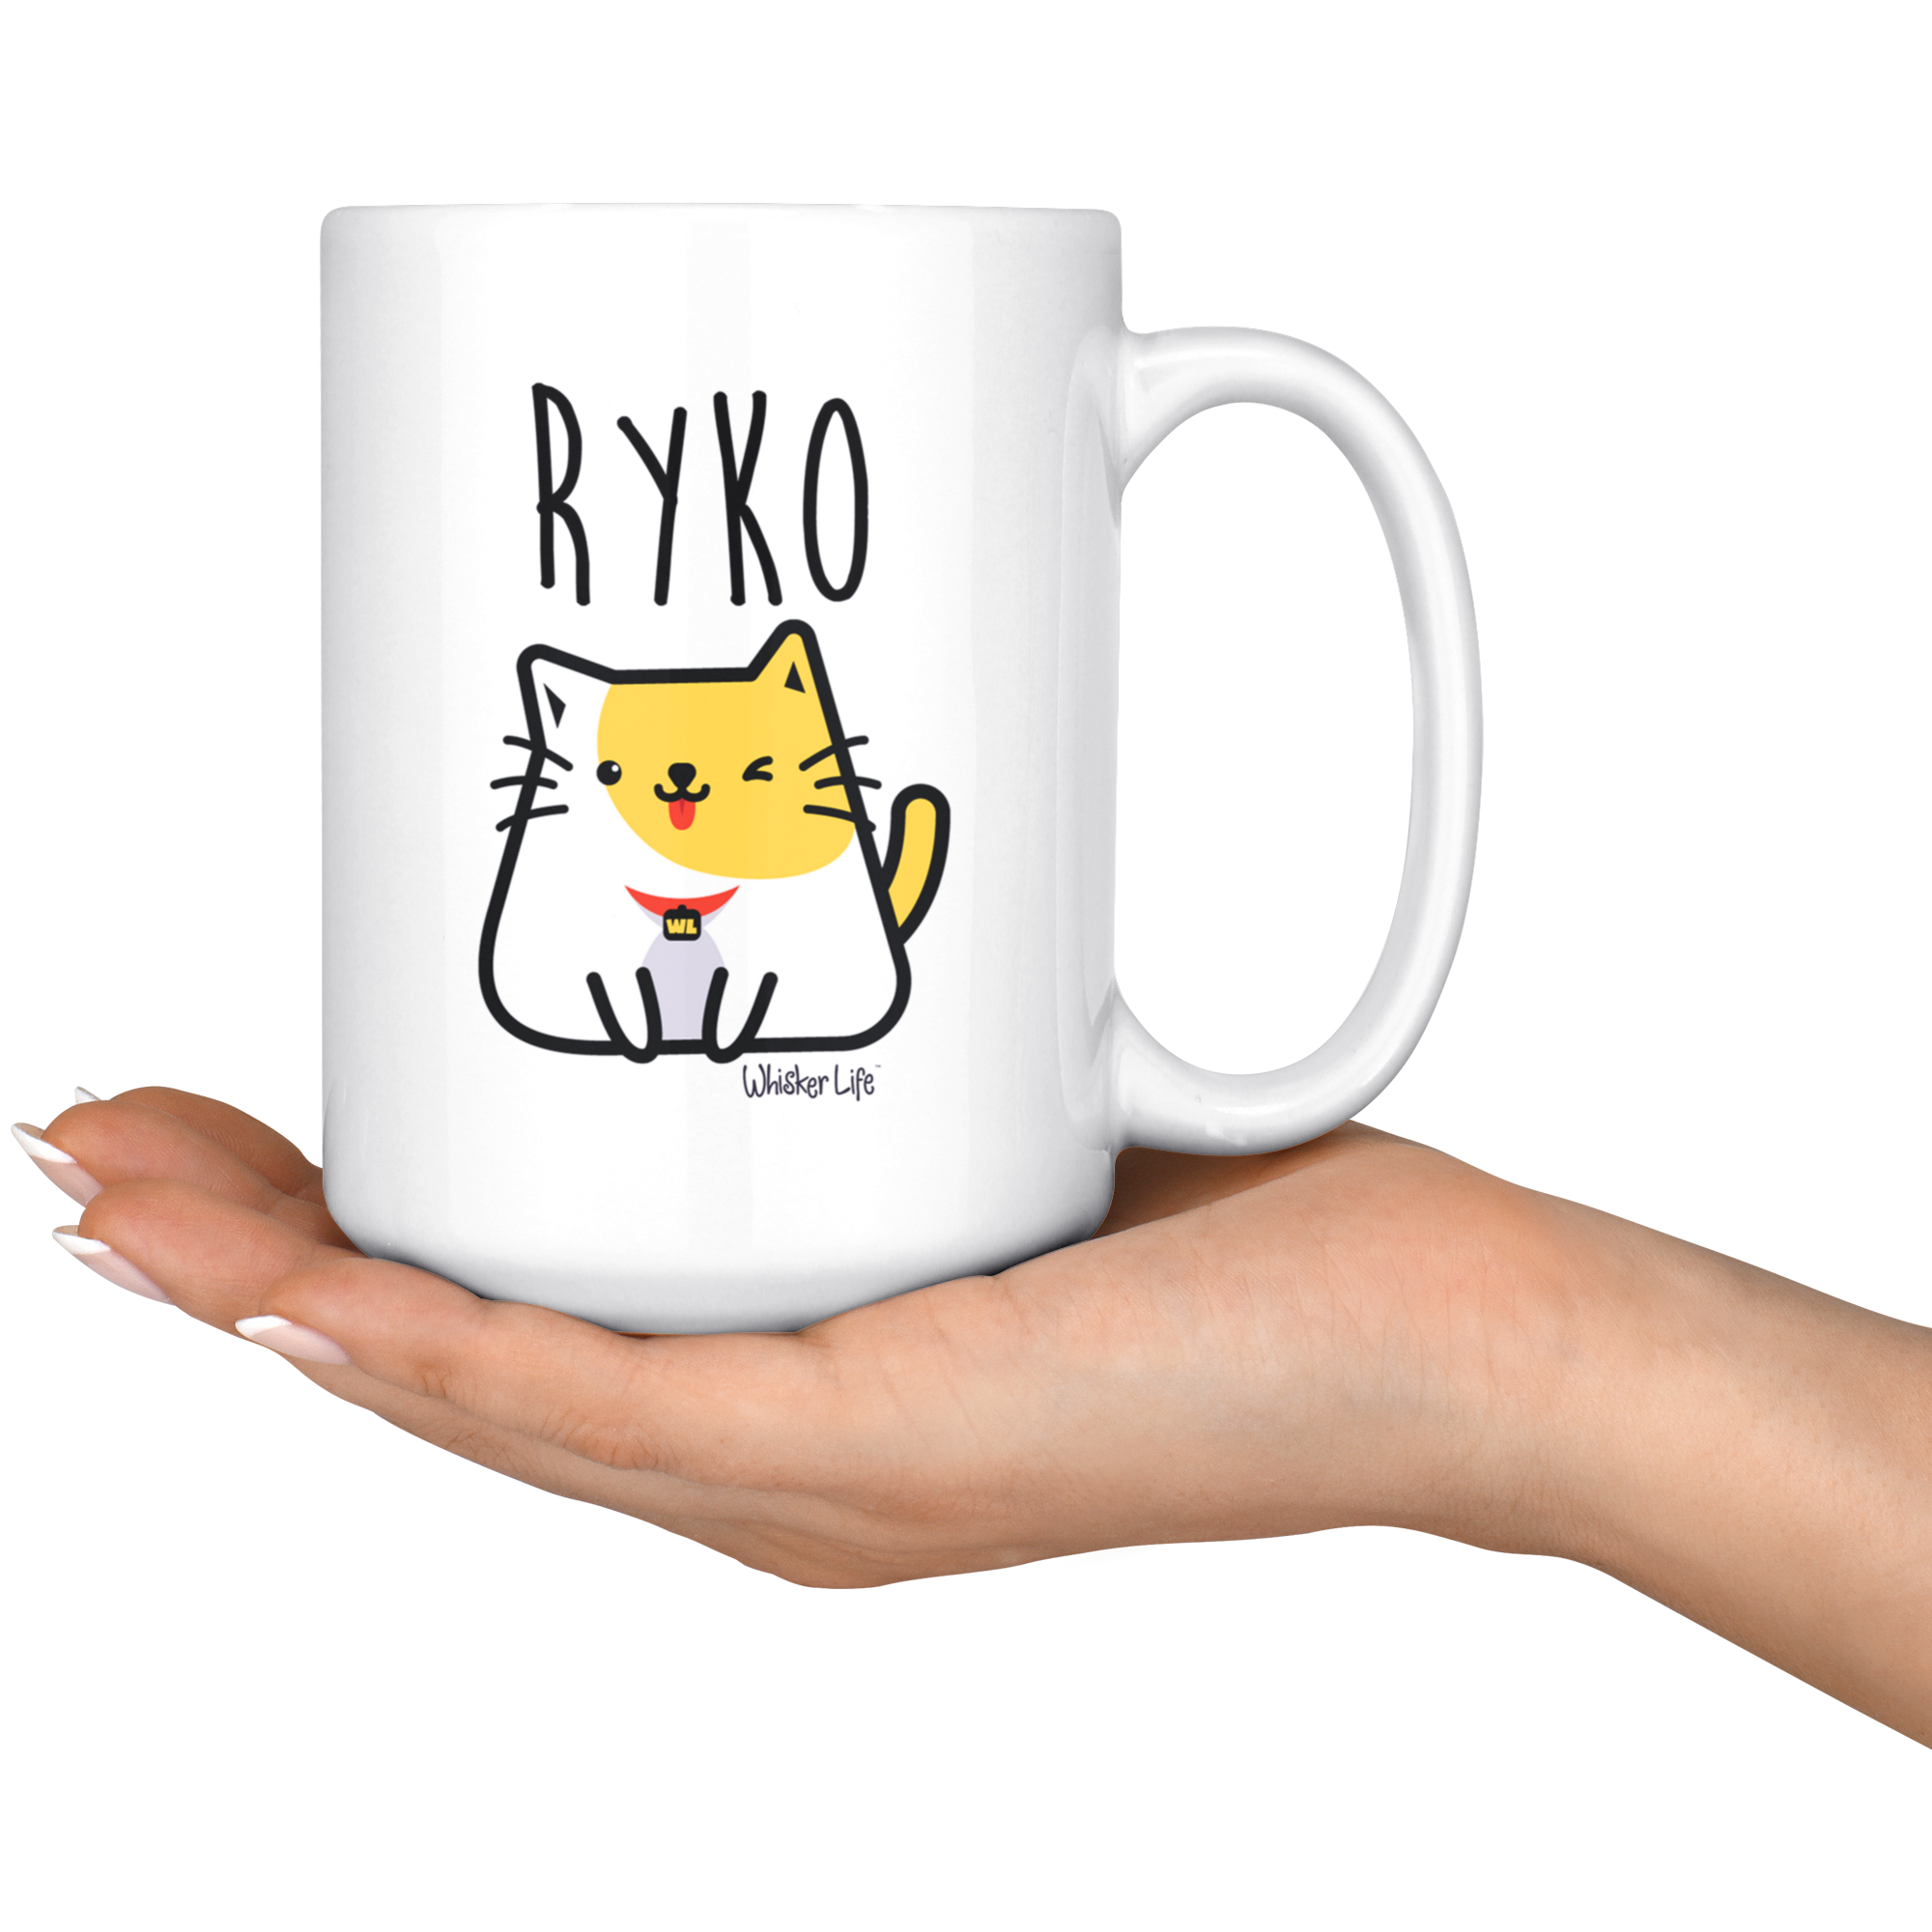 Ryko Sitting - Large 15oz Coffee Mug